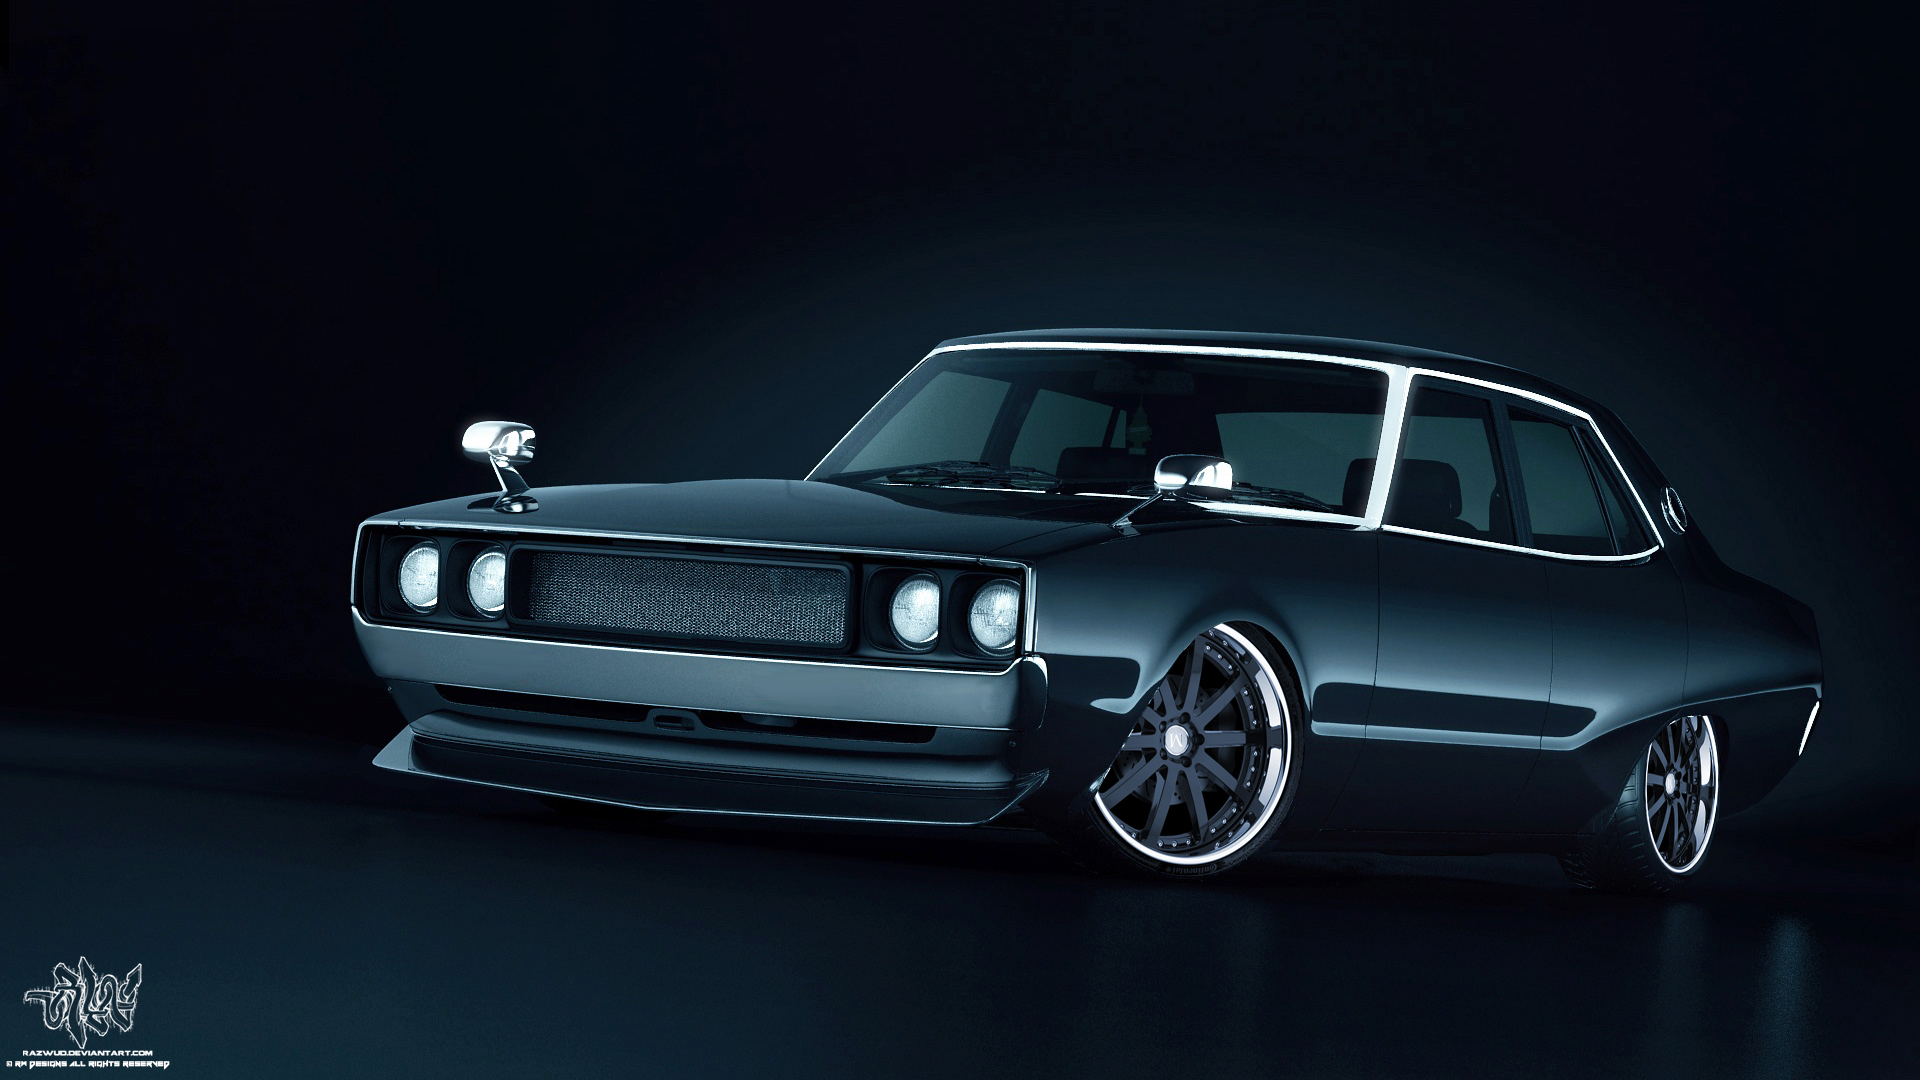 Modified Nissan Skyline C110 by Razwud